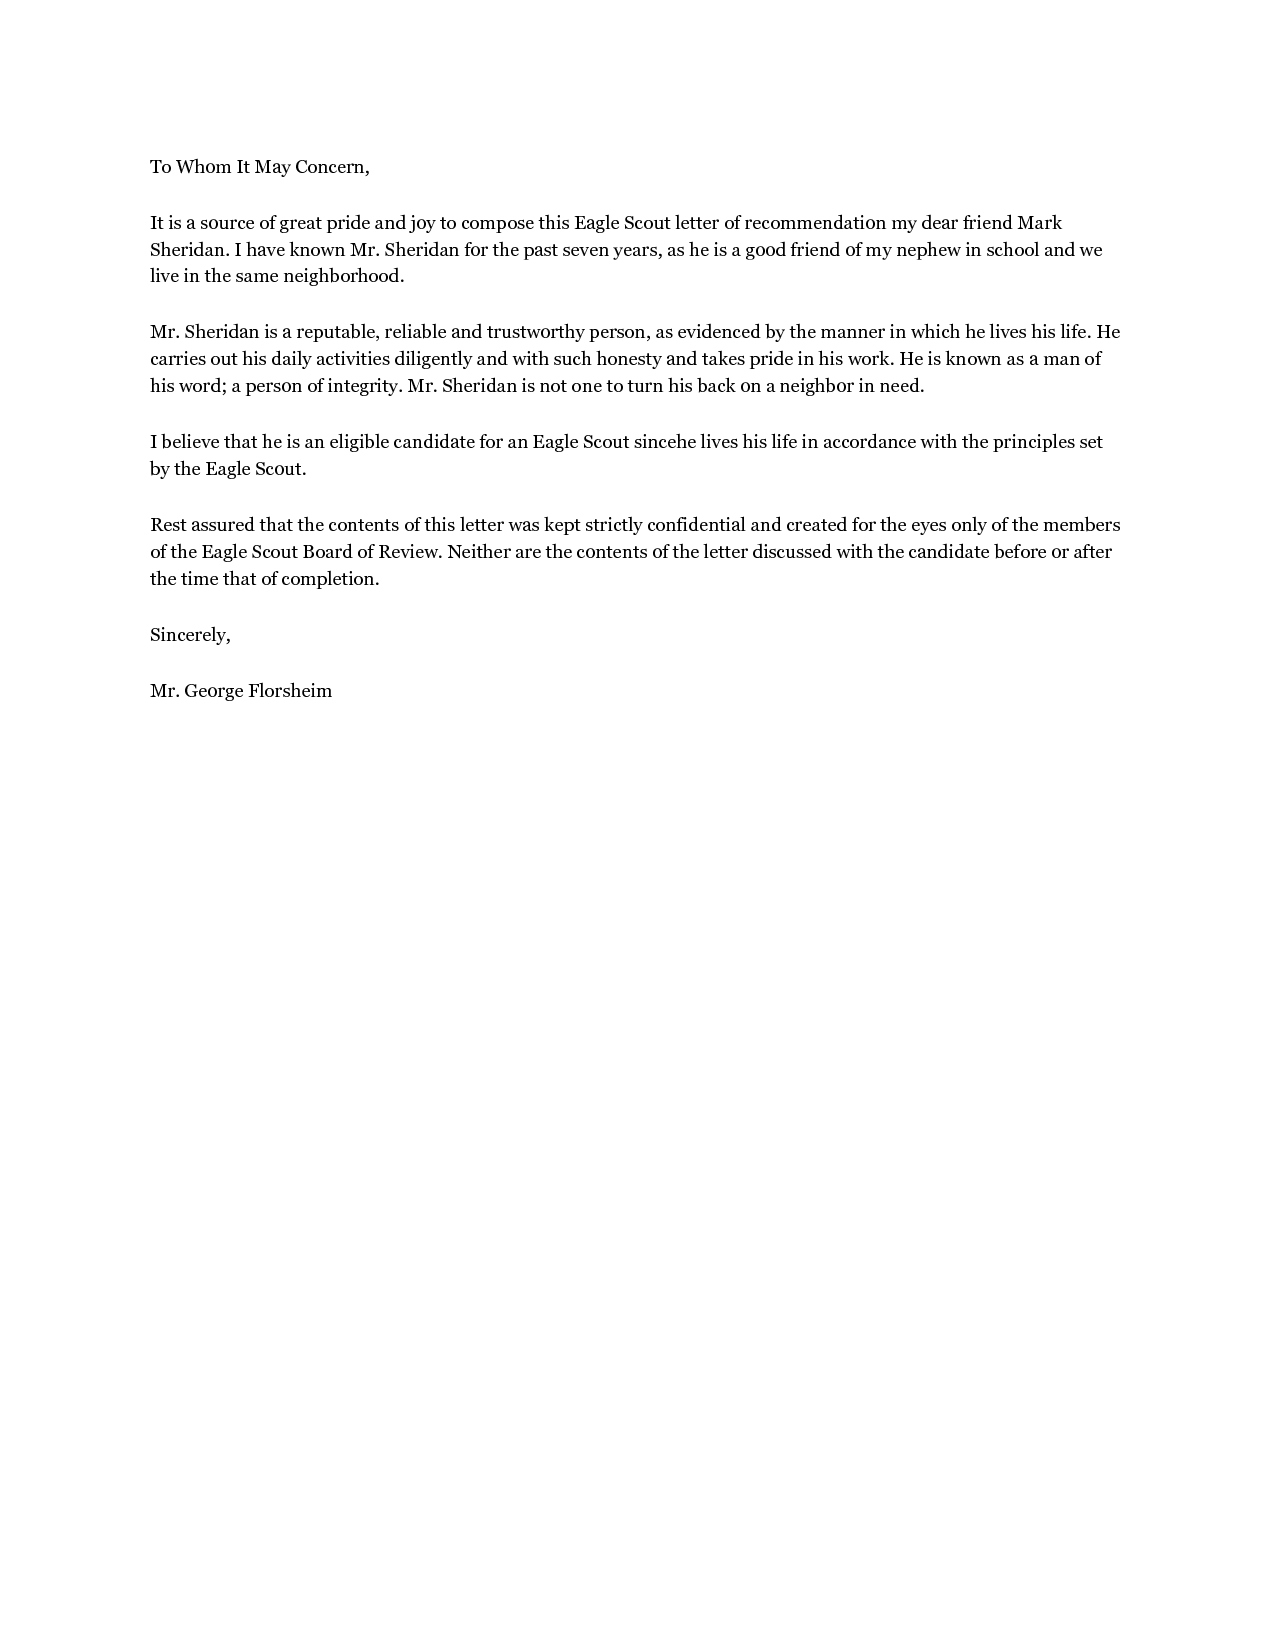 Personal Letter Of Recommendation for A Friend Template - Gplusnick Wp Content 2016 09 Eagle Sco